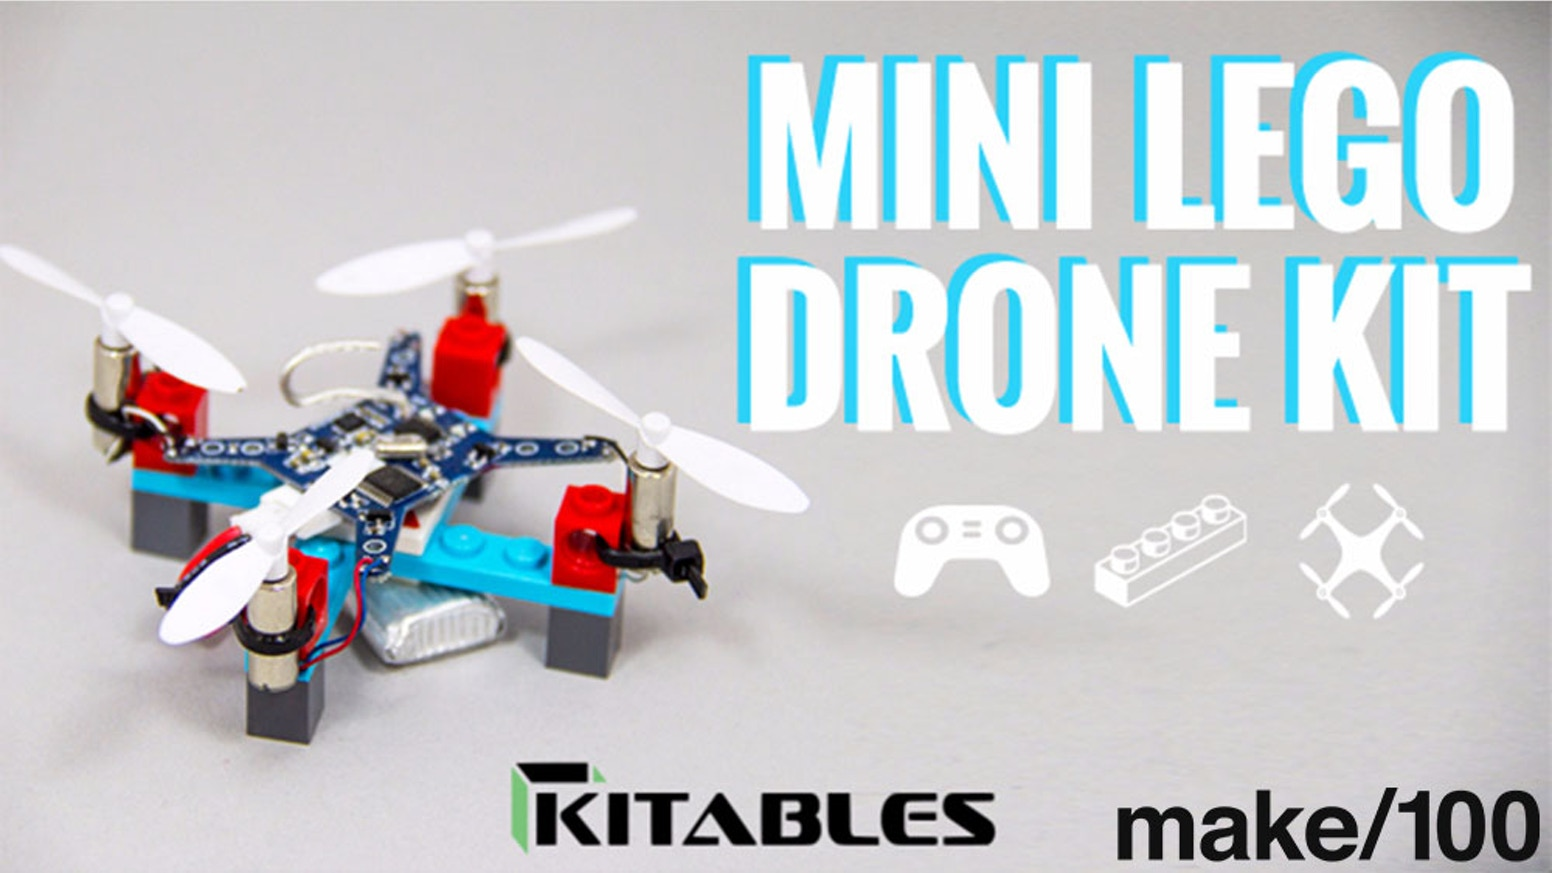 The Mini Lego Drone Kit Gives You Everything